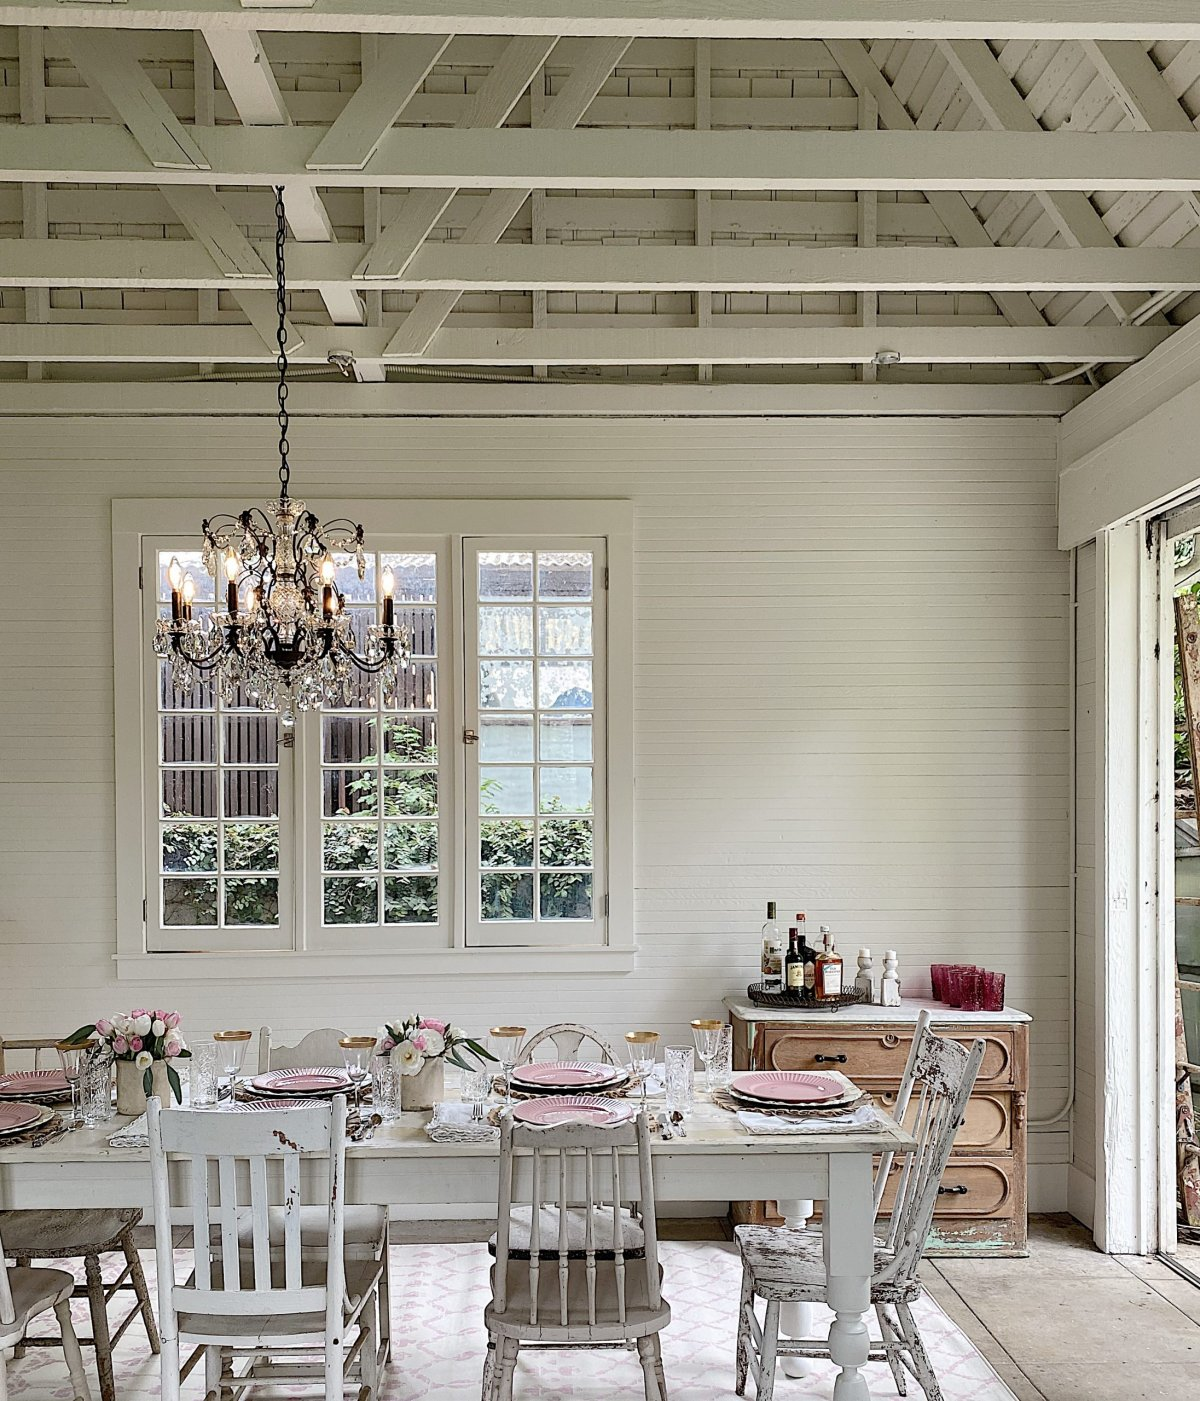 The Carriage House Renovation